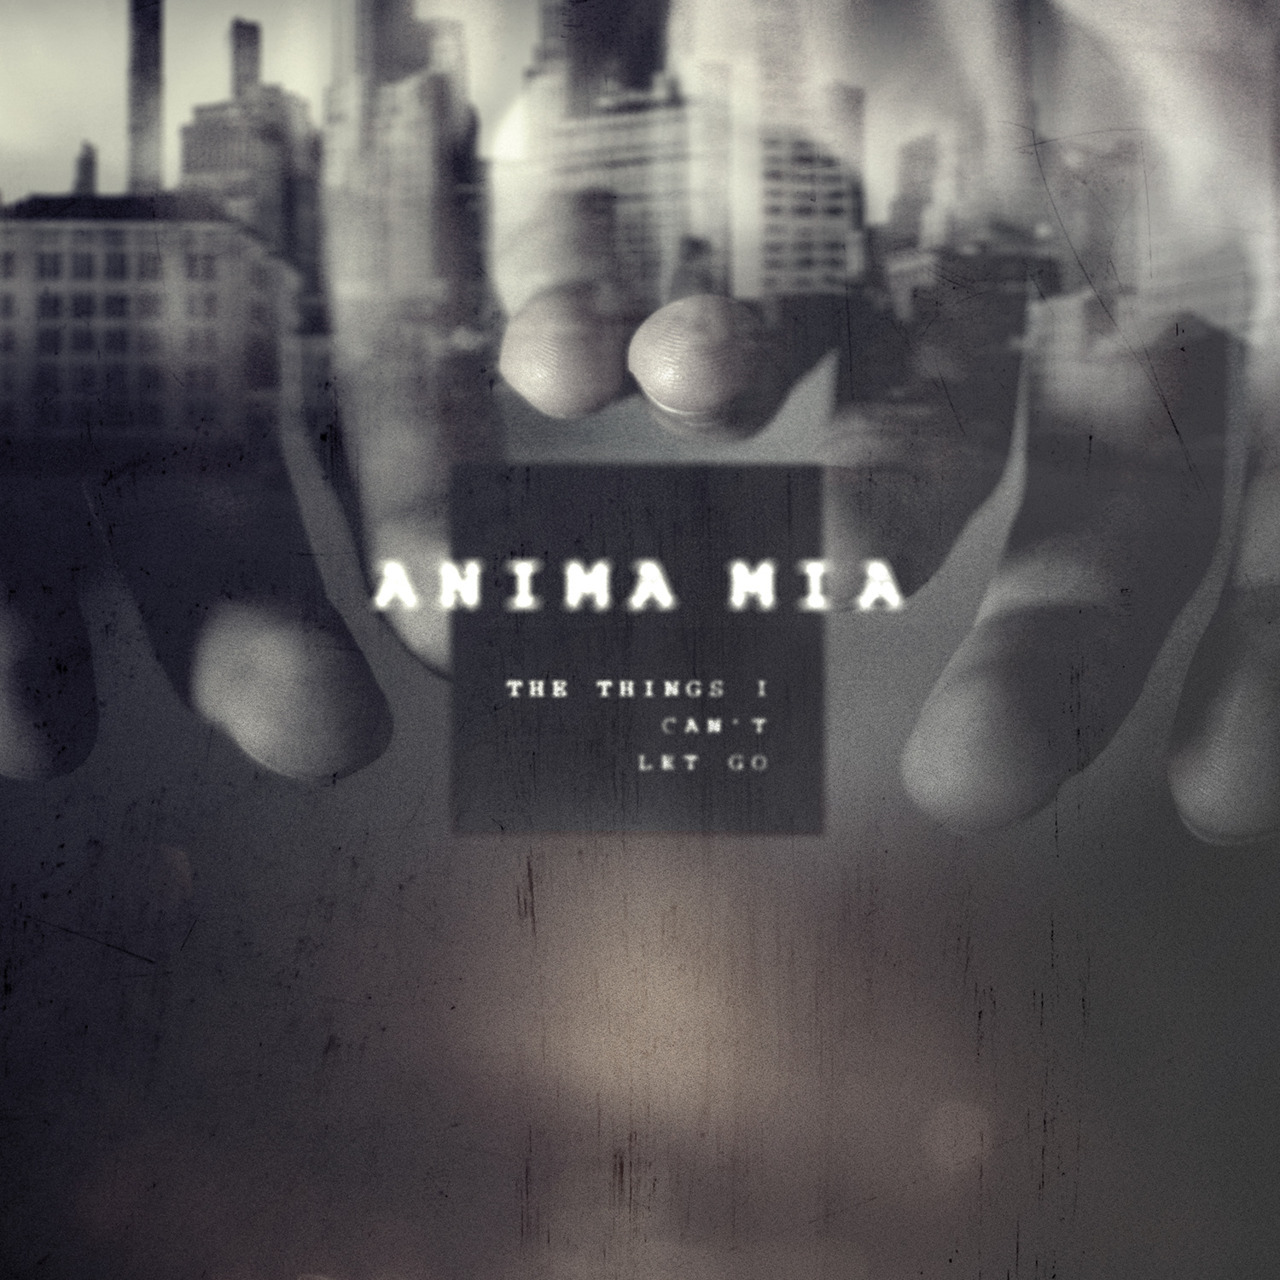 Album artwork for Anima Mia